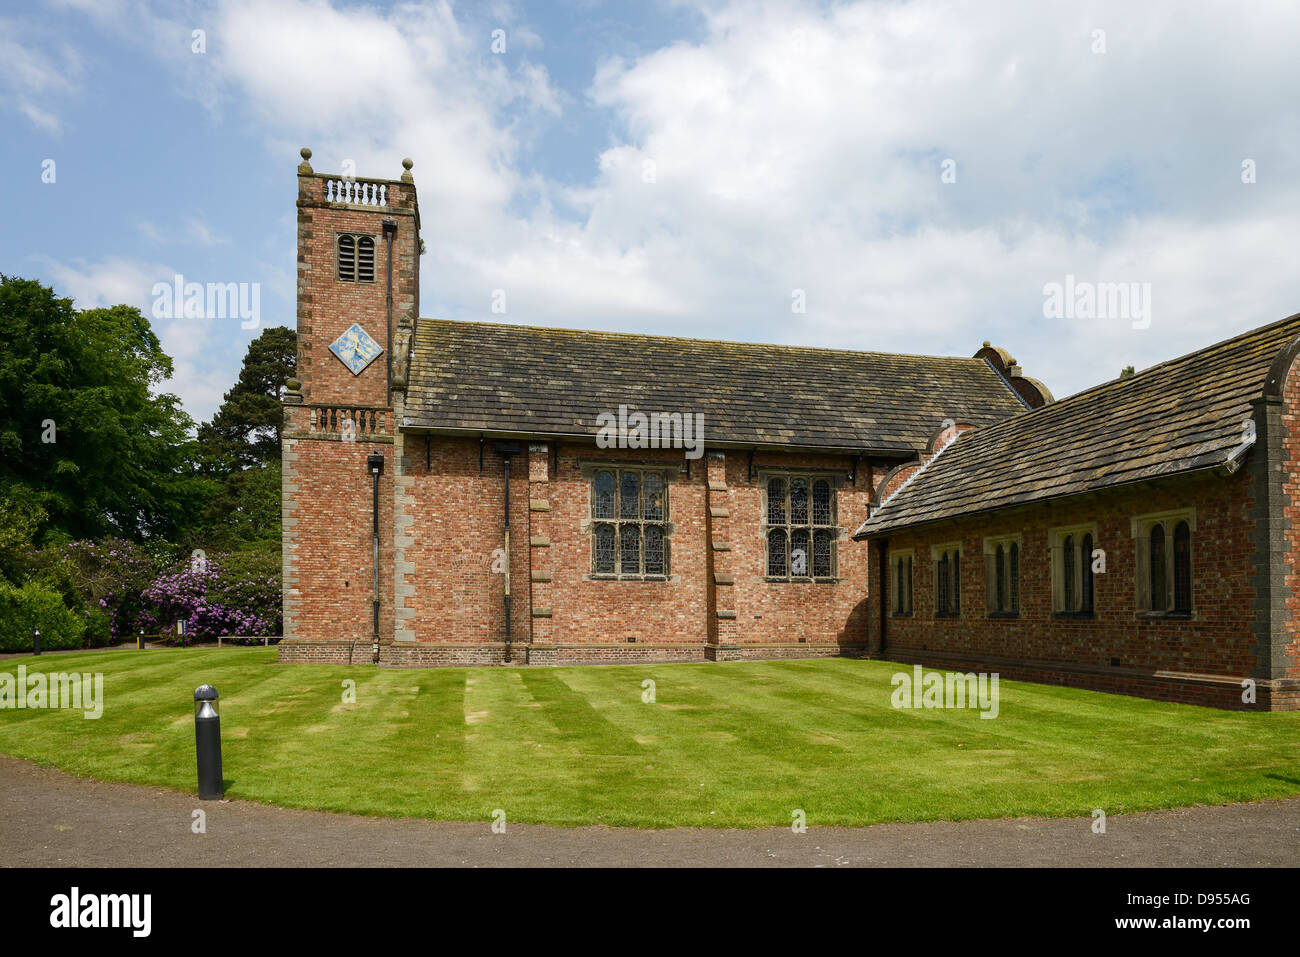 The Chapel at Tabley House near Knutsford Cheshire UK - Stock Image